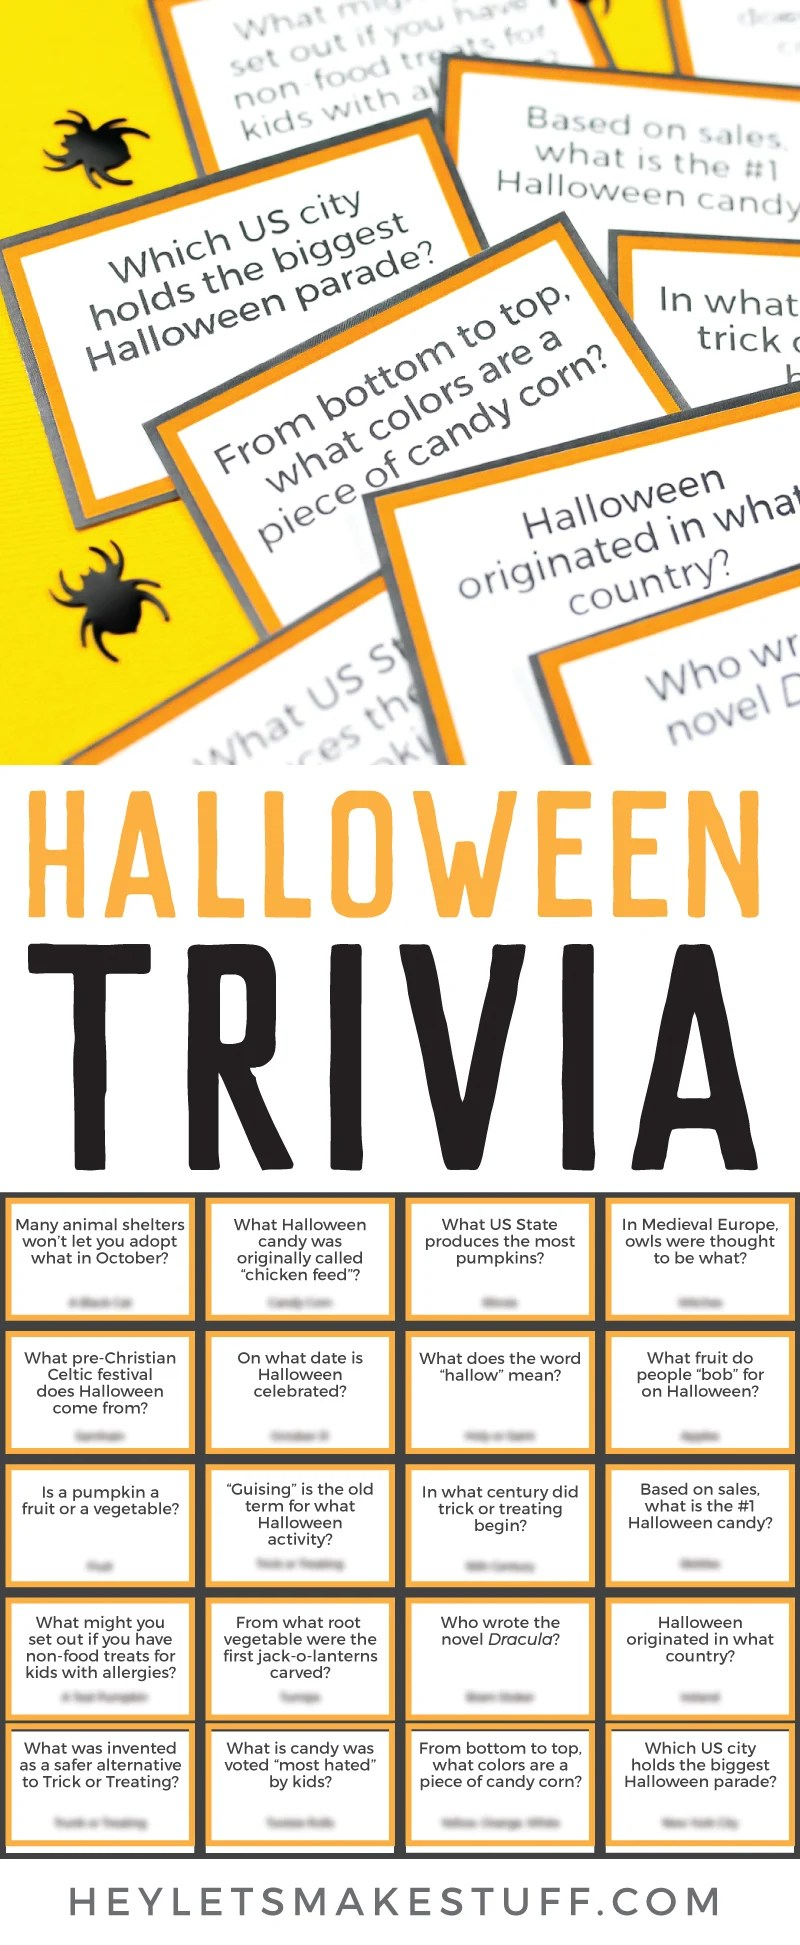 photograph about Halloween Trivia Questions and Answers Free Printable referred to as Absolutely free Printable Halloween Trivia - Hey, Makes it possible for Produce Things